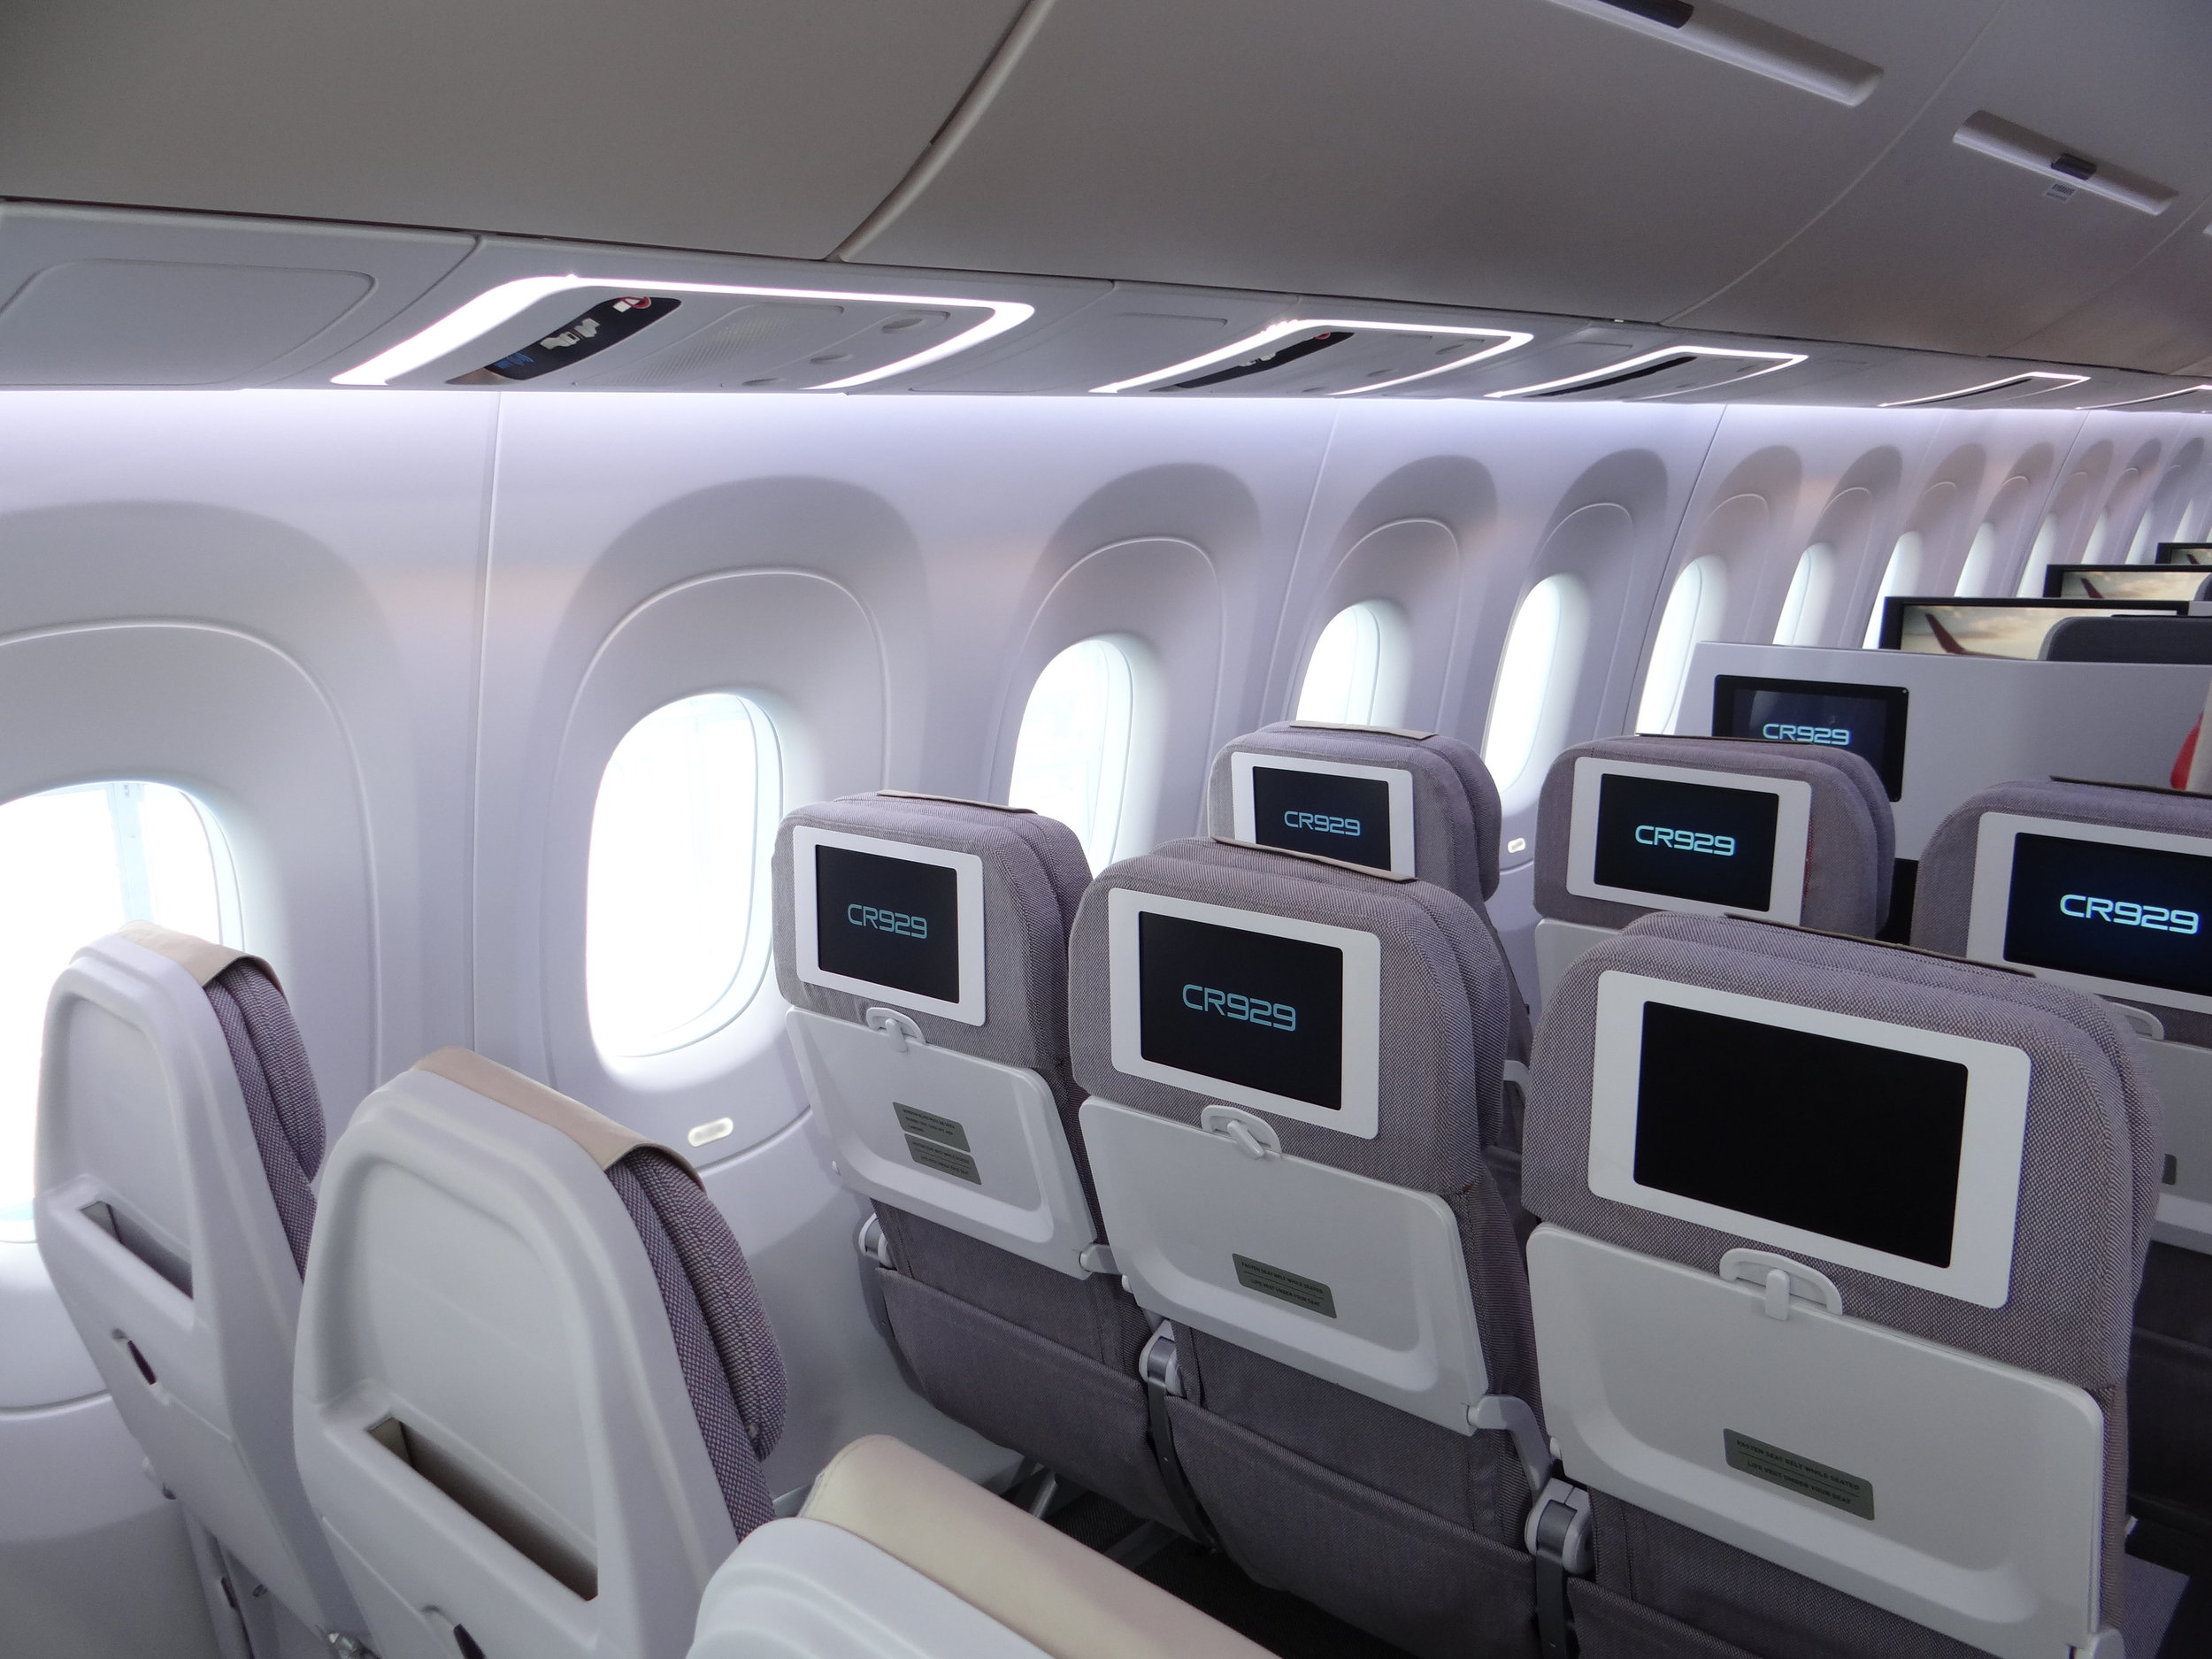 cr929 seats aircraft mockup.JPG